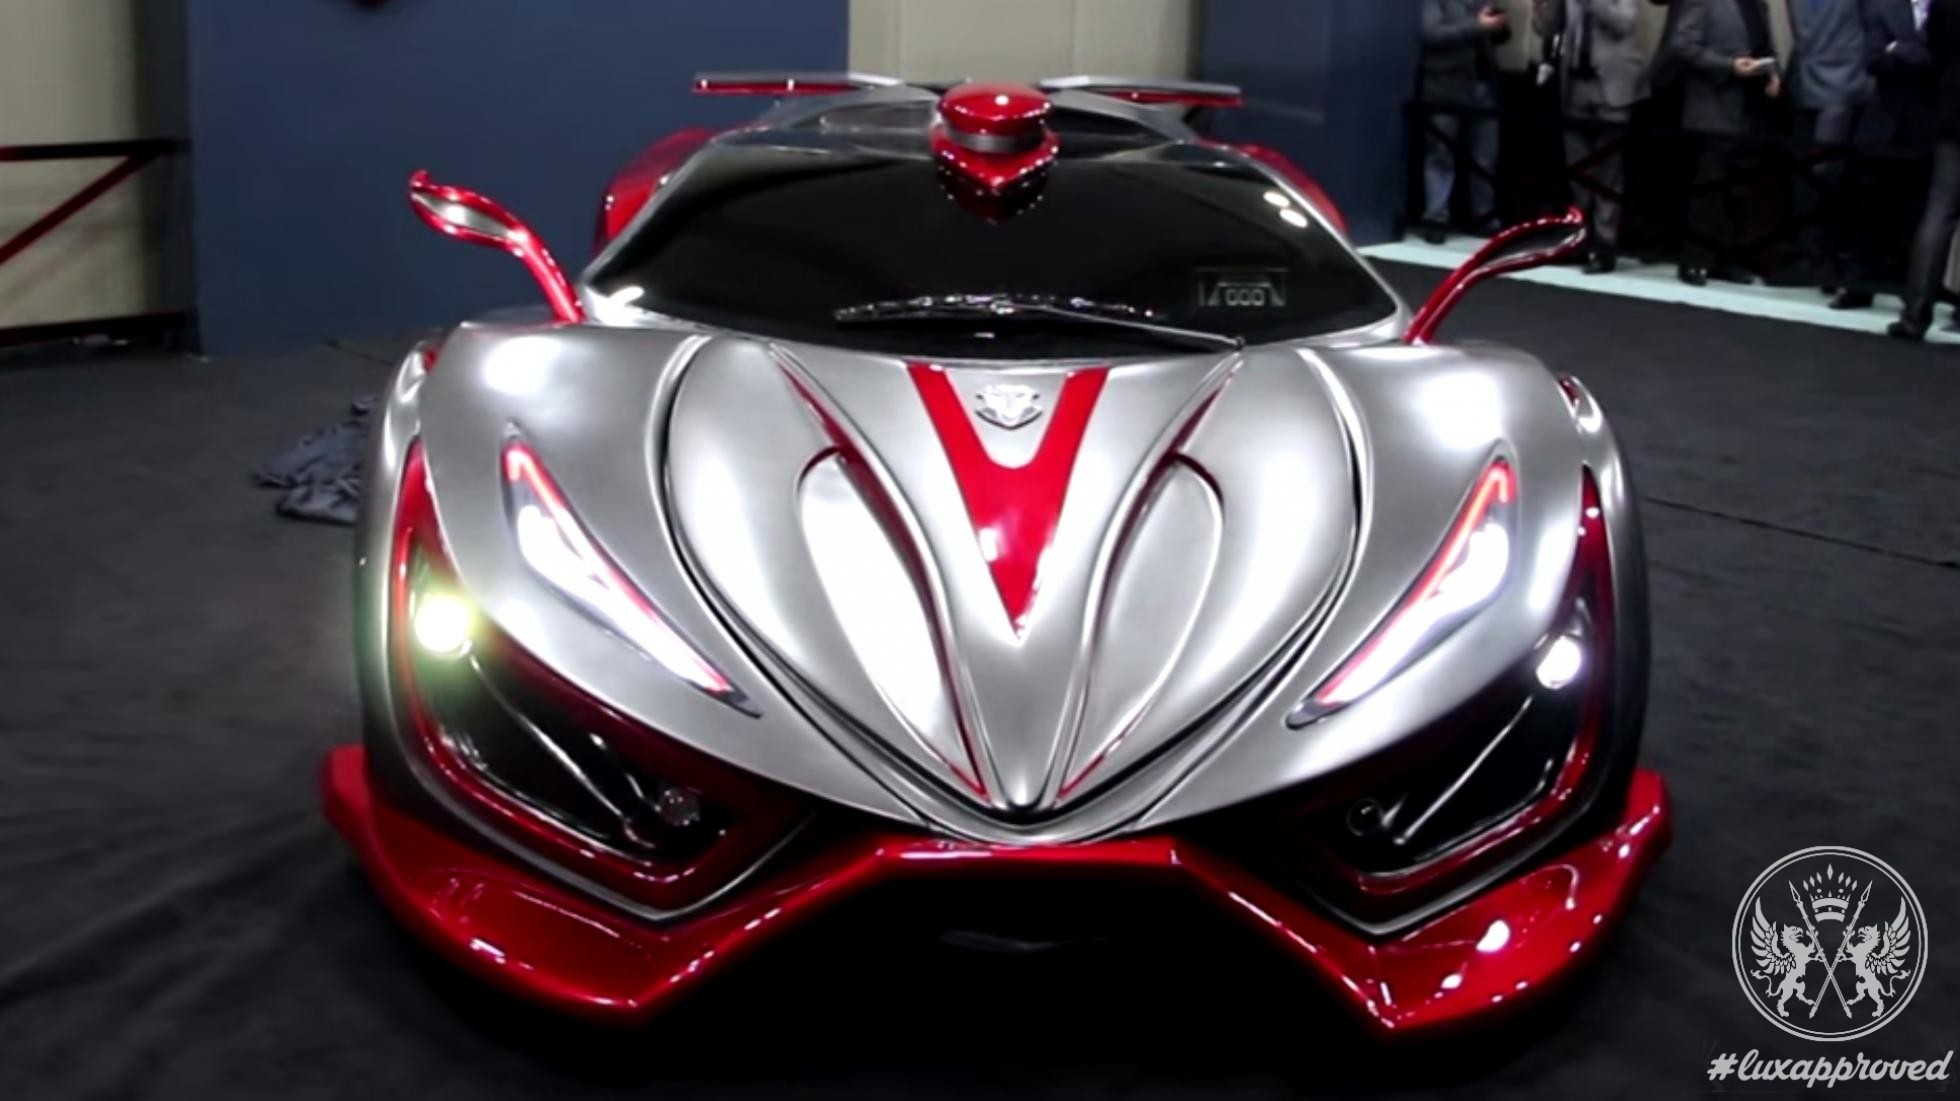 Inferno Exotic Car 2017 >> 'Inferno' supercar Mexico's 1400 hp monster is something that el diablo would drive - Carhoots